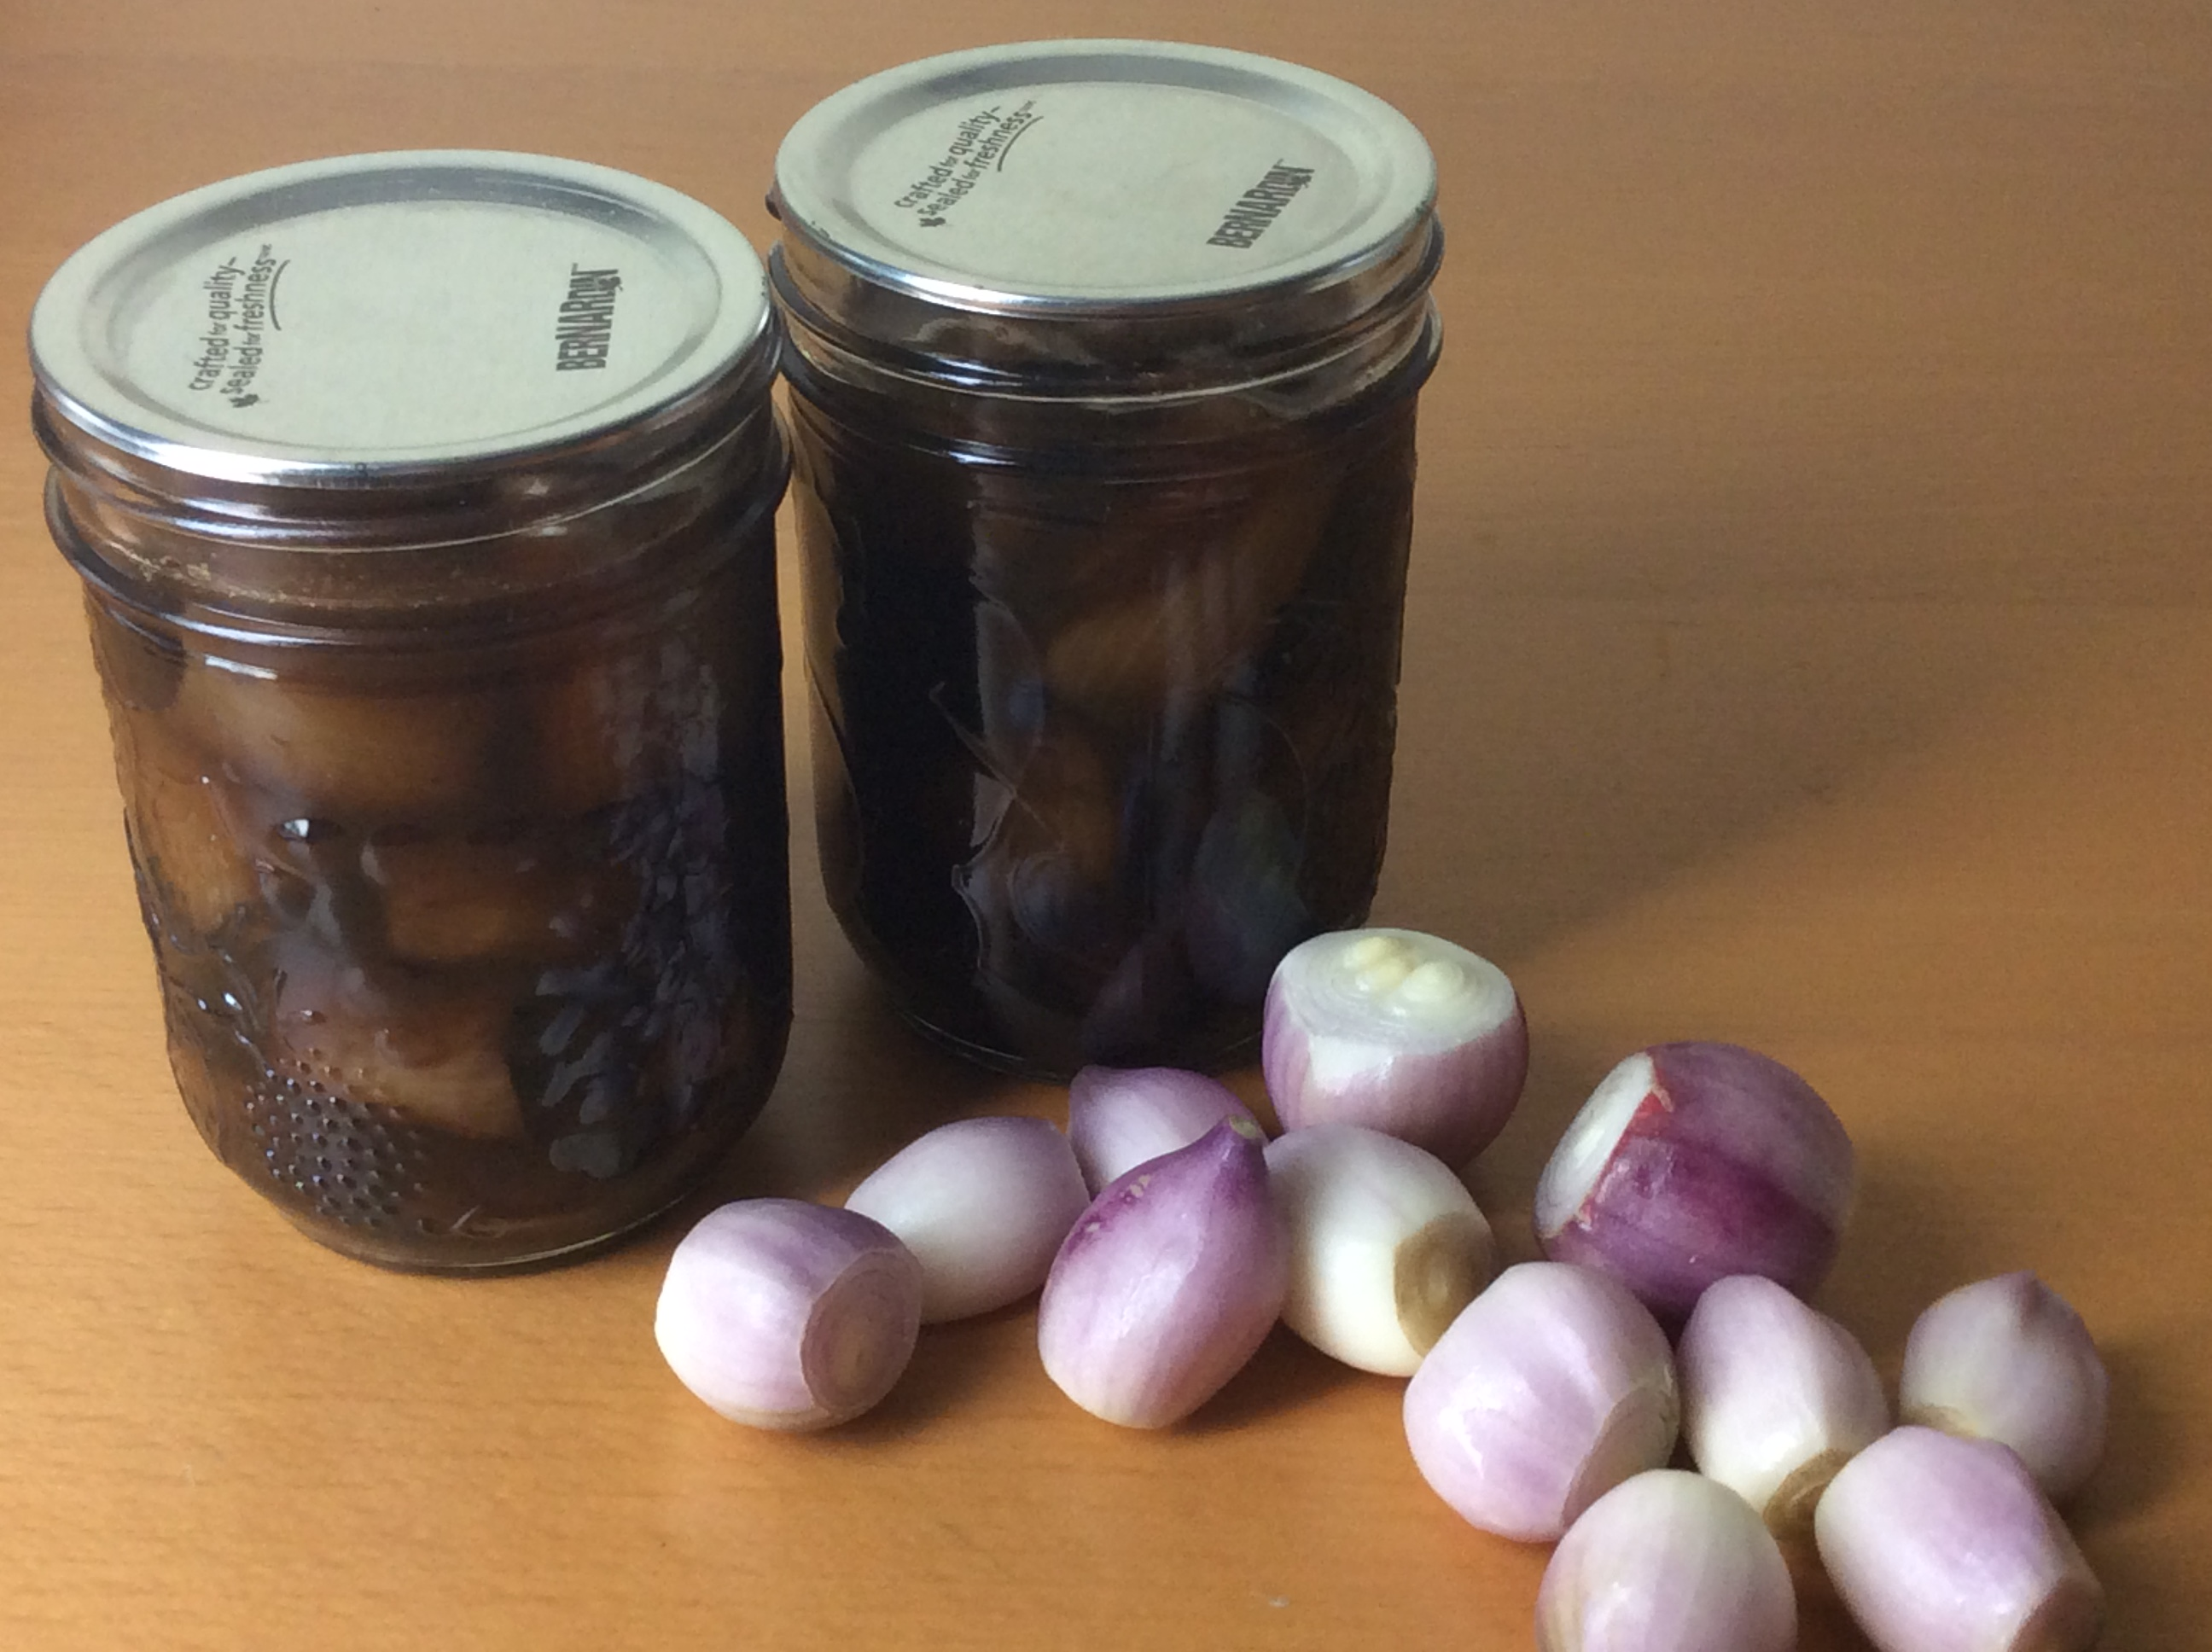 Pickled balsamic onions